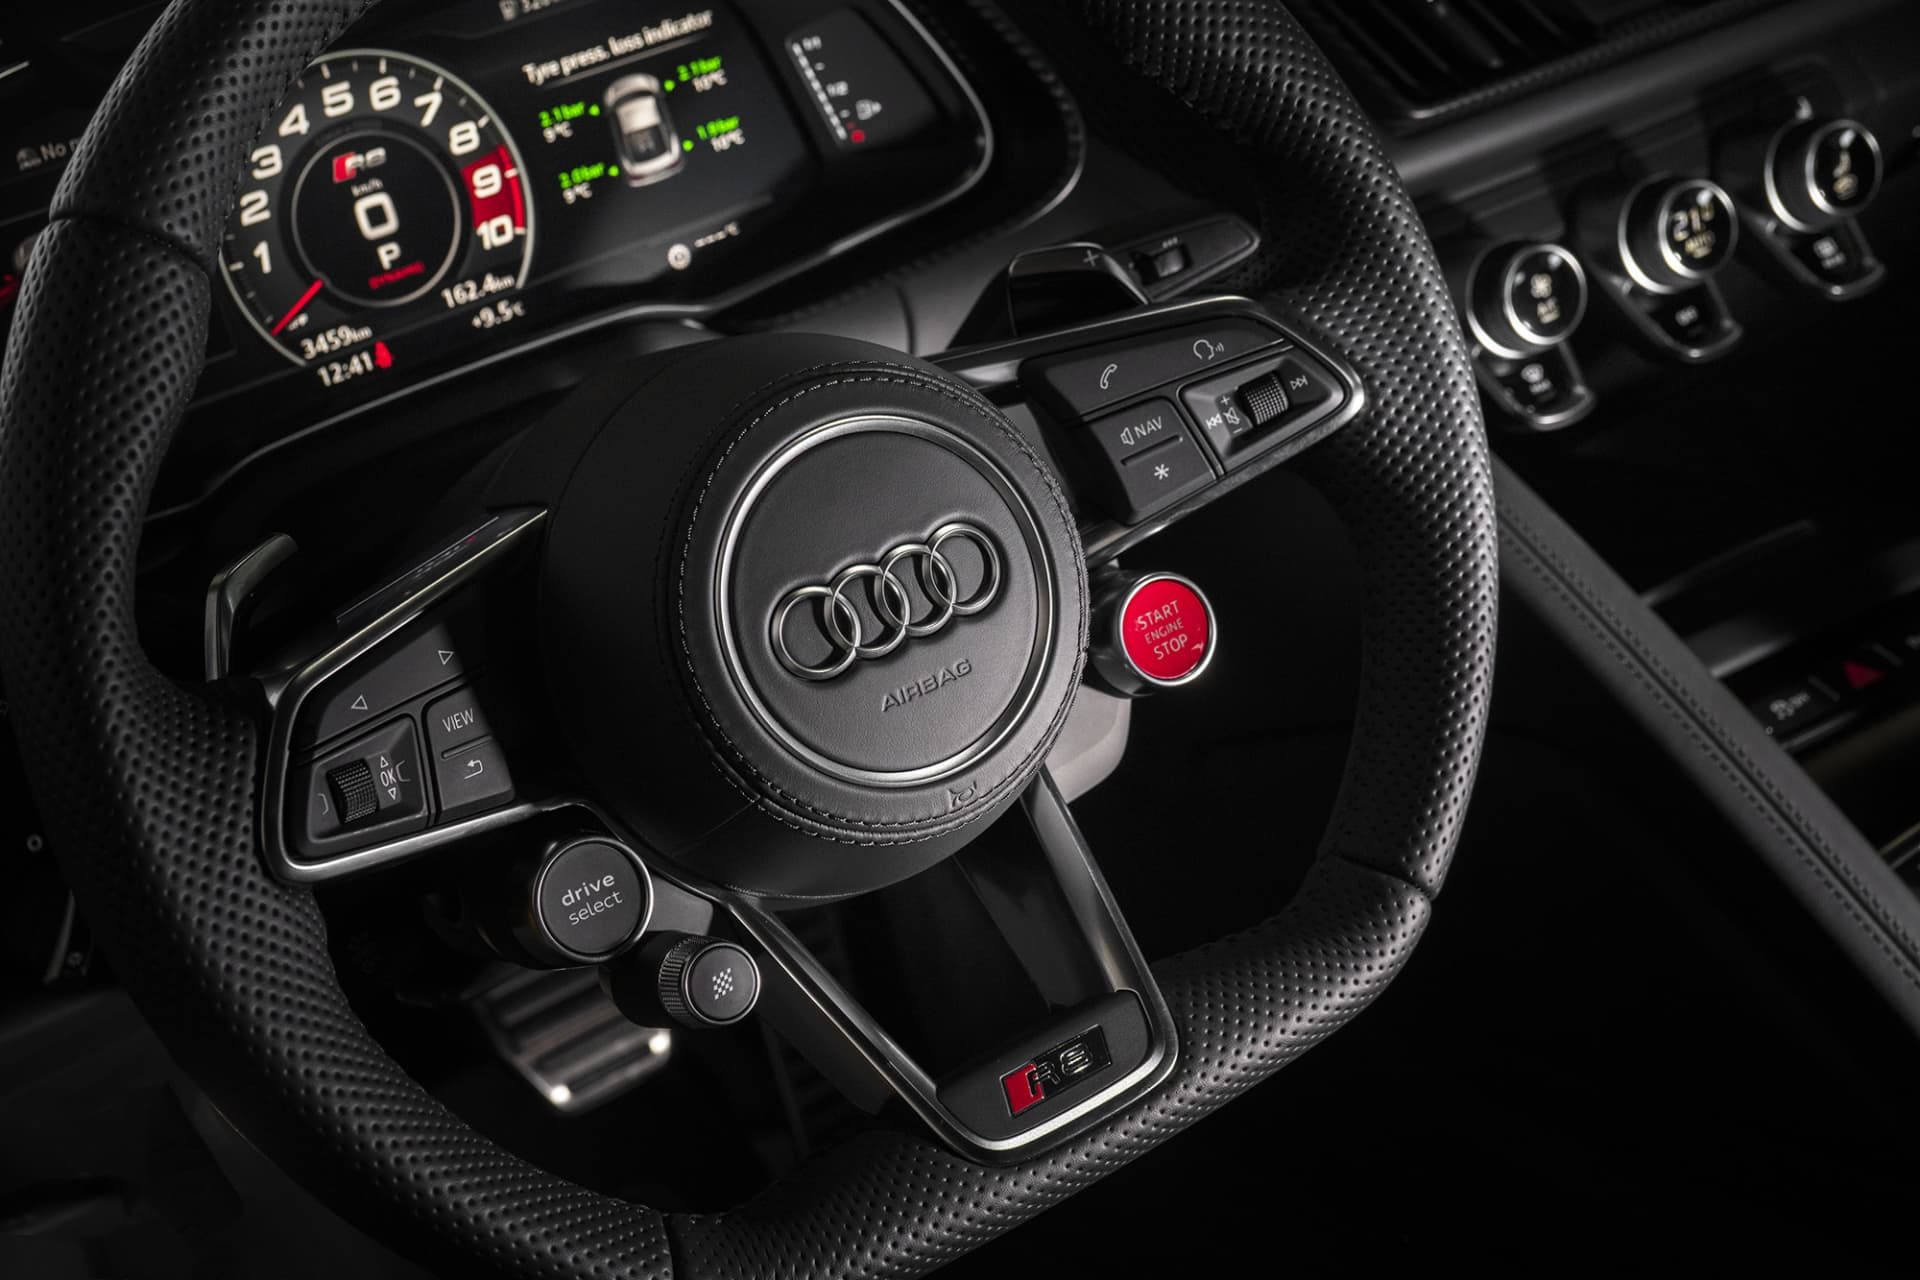 The bright red button that brings the V10 motor to life is located on the steering wheel, on the lower right hand side. The levers for the different drive modes and the Peformance ESP technology are on the left hand side.